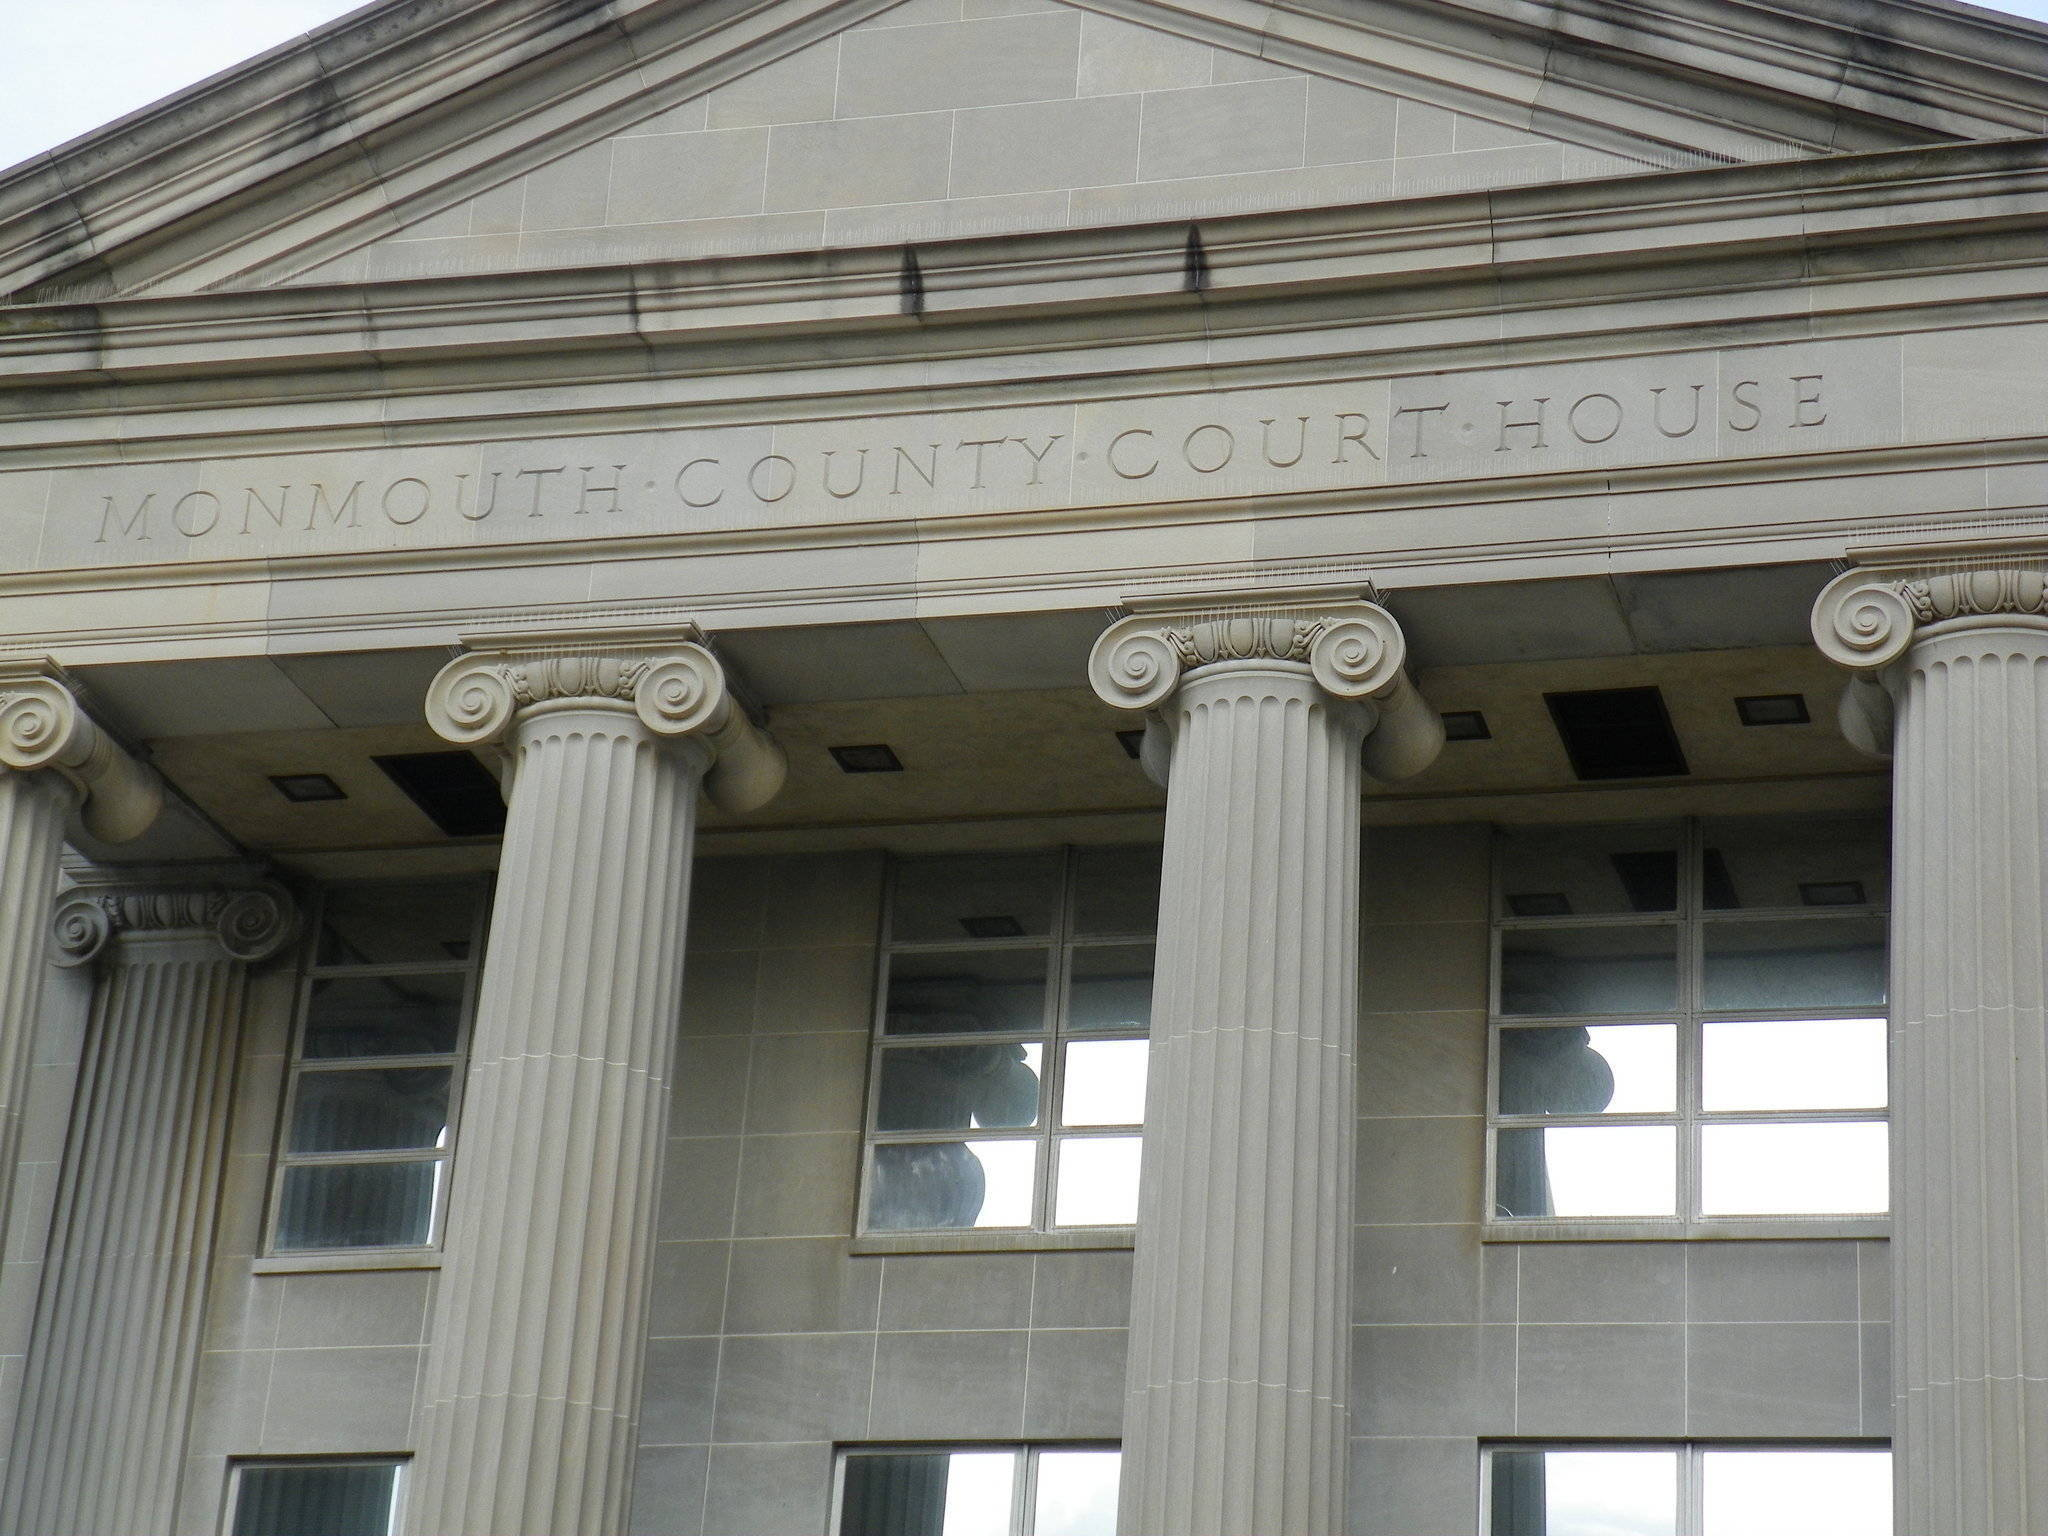 be50f1c79fb73851ca5a_monmouthcountycourthouse.jpg